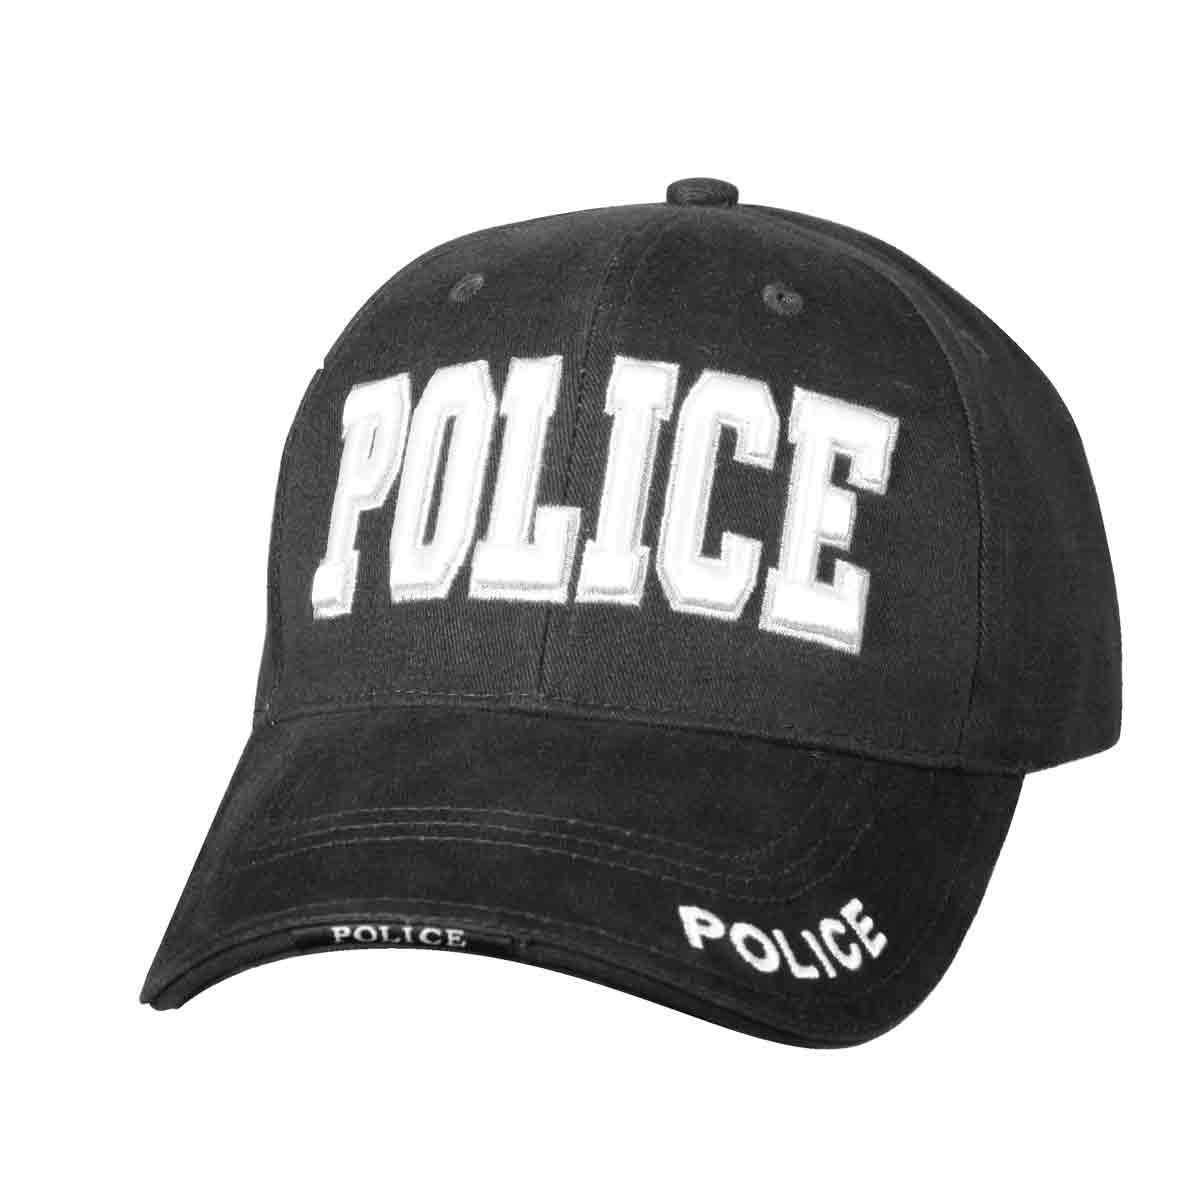 Rothco Deluxe Police Low Profile Cap | UKMCPro